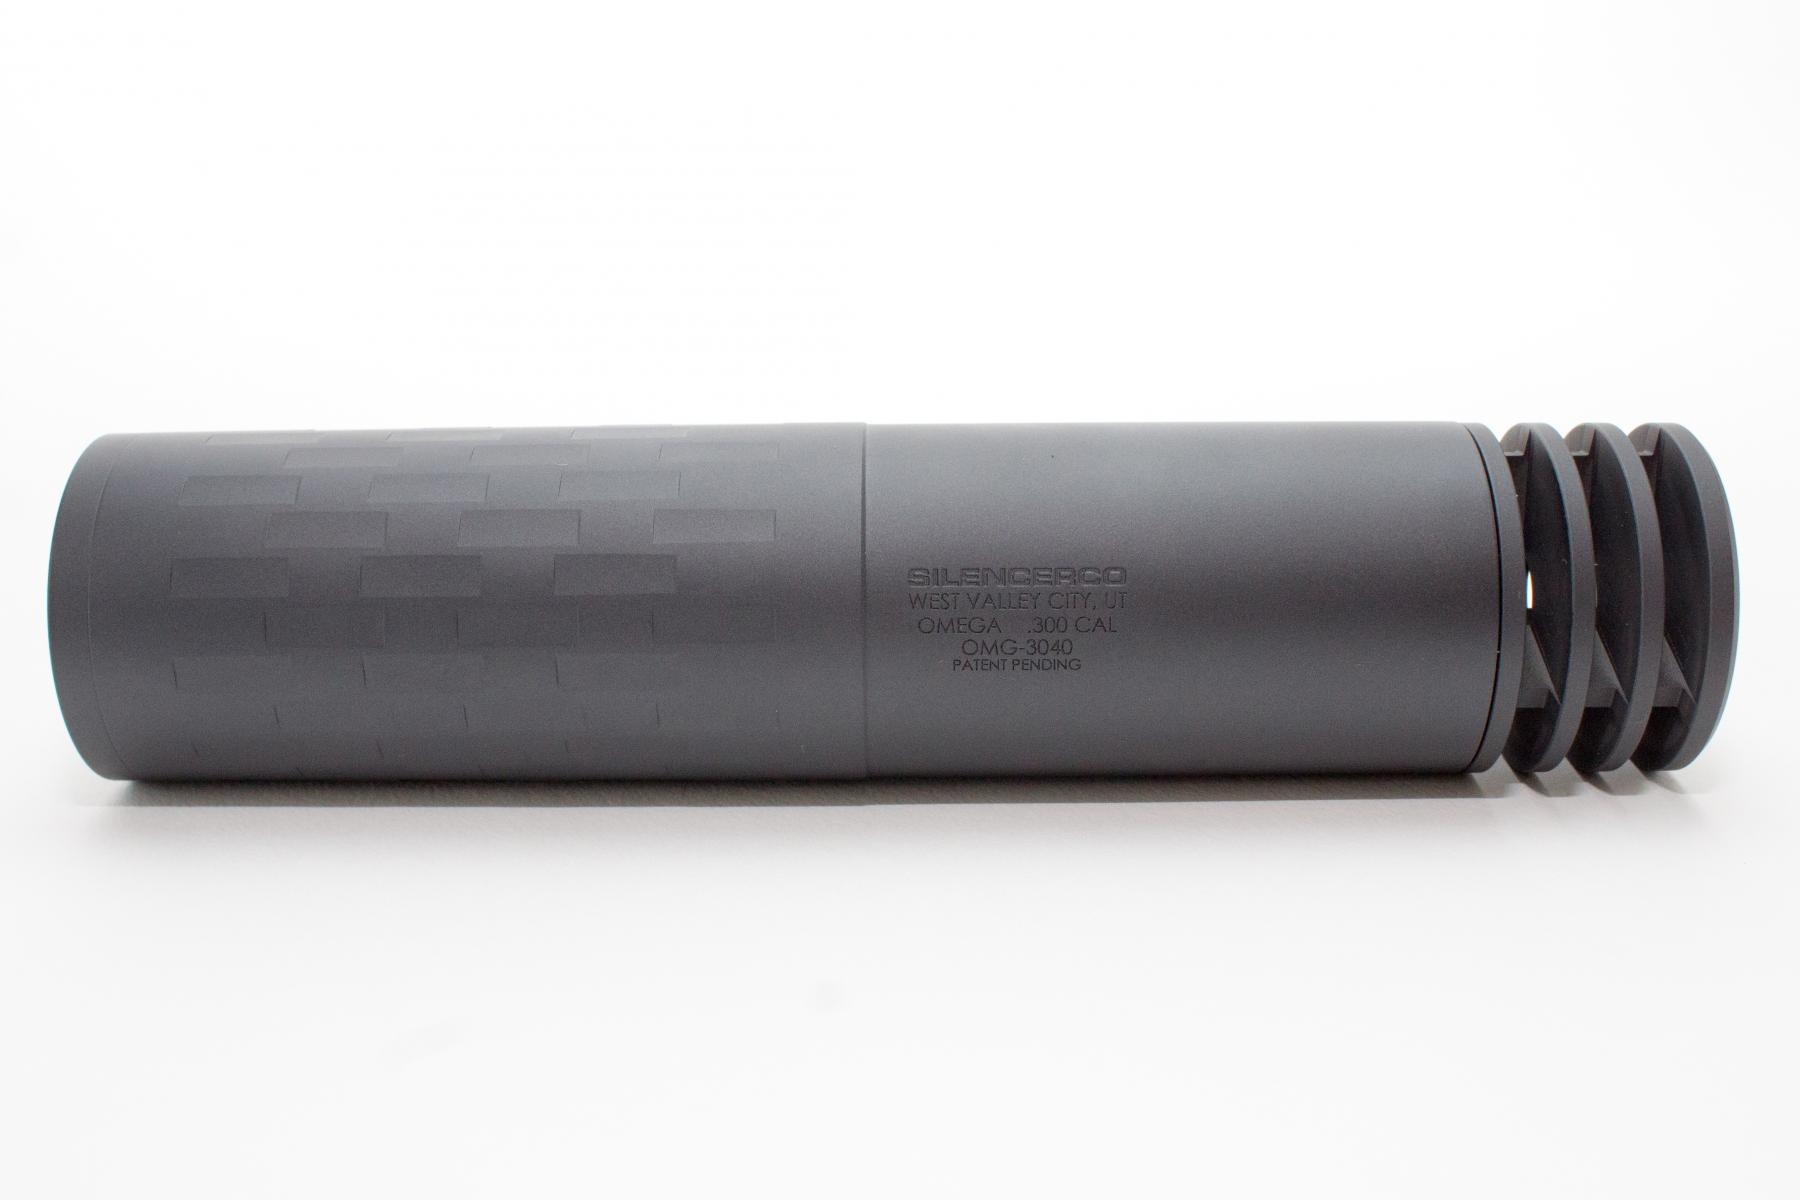 Omega Centerfire Rifle Silencer |With Mount Multi-Caliber 7.09 Inch 1.56 Inch Diameter 14 Ounces - All NFA Rules Apply